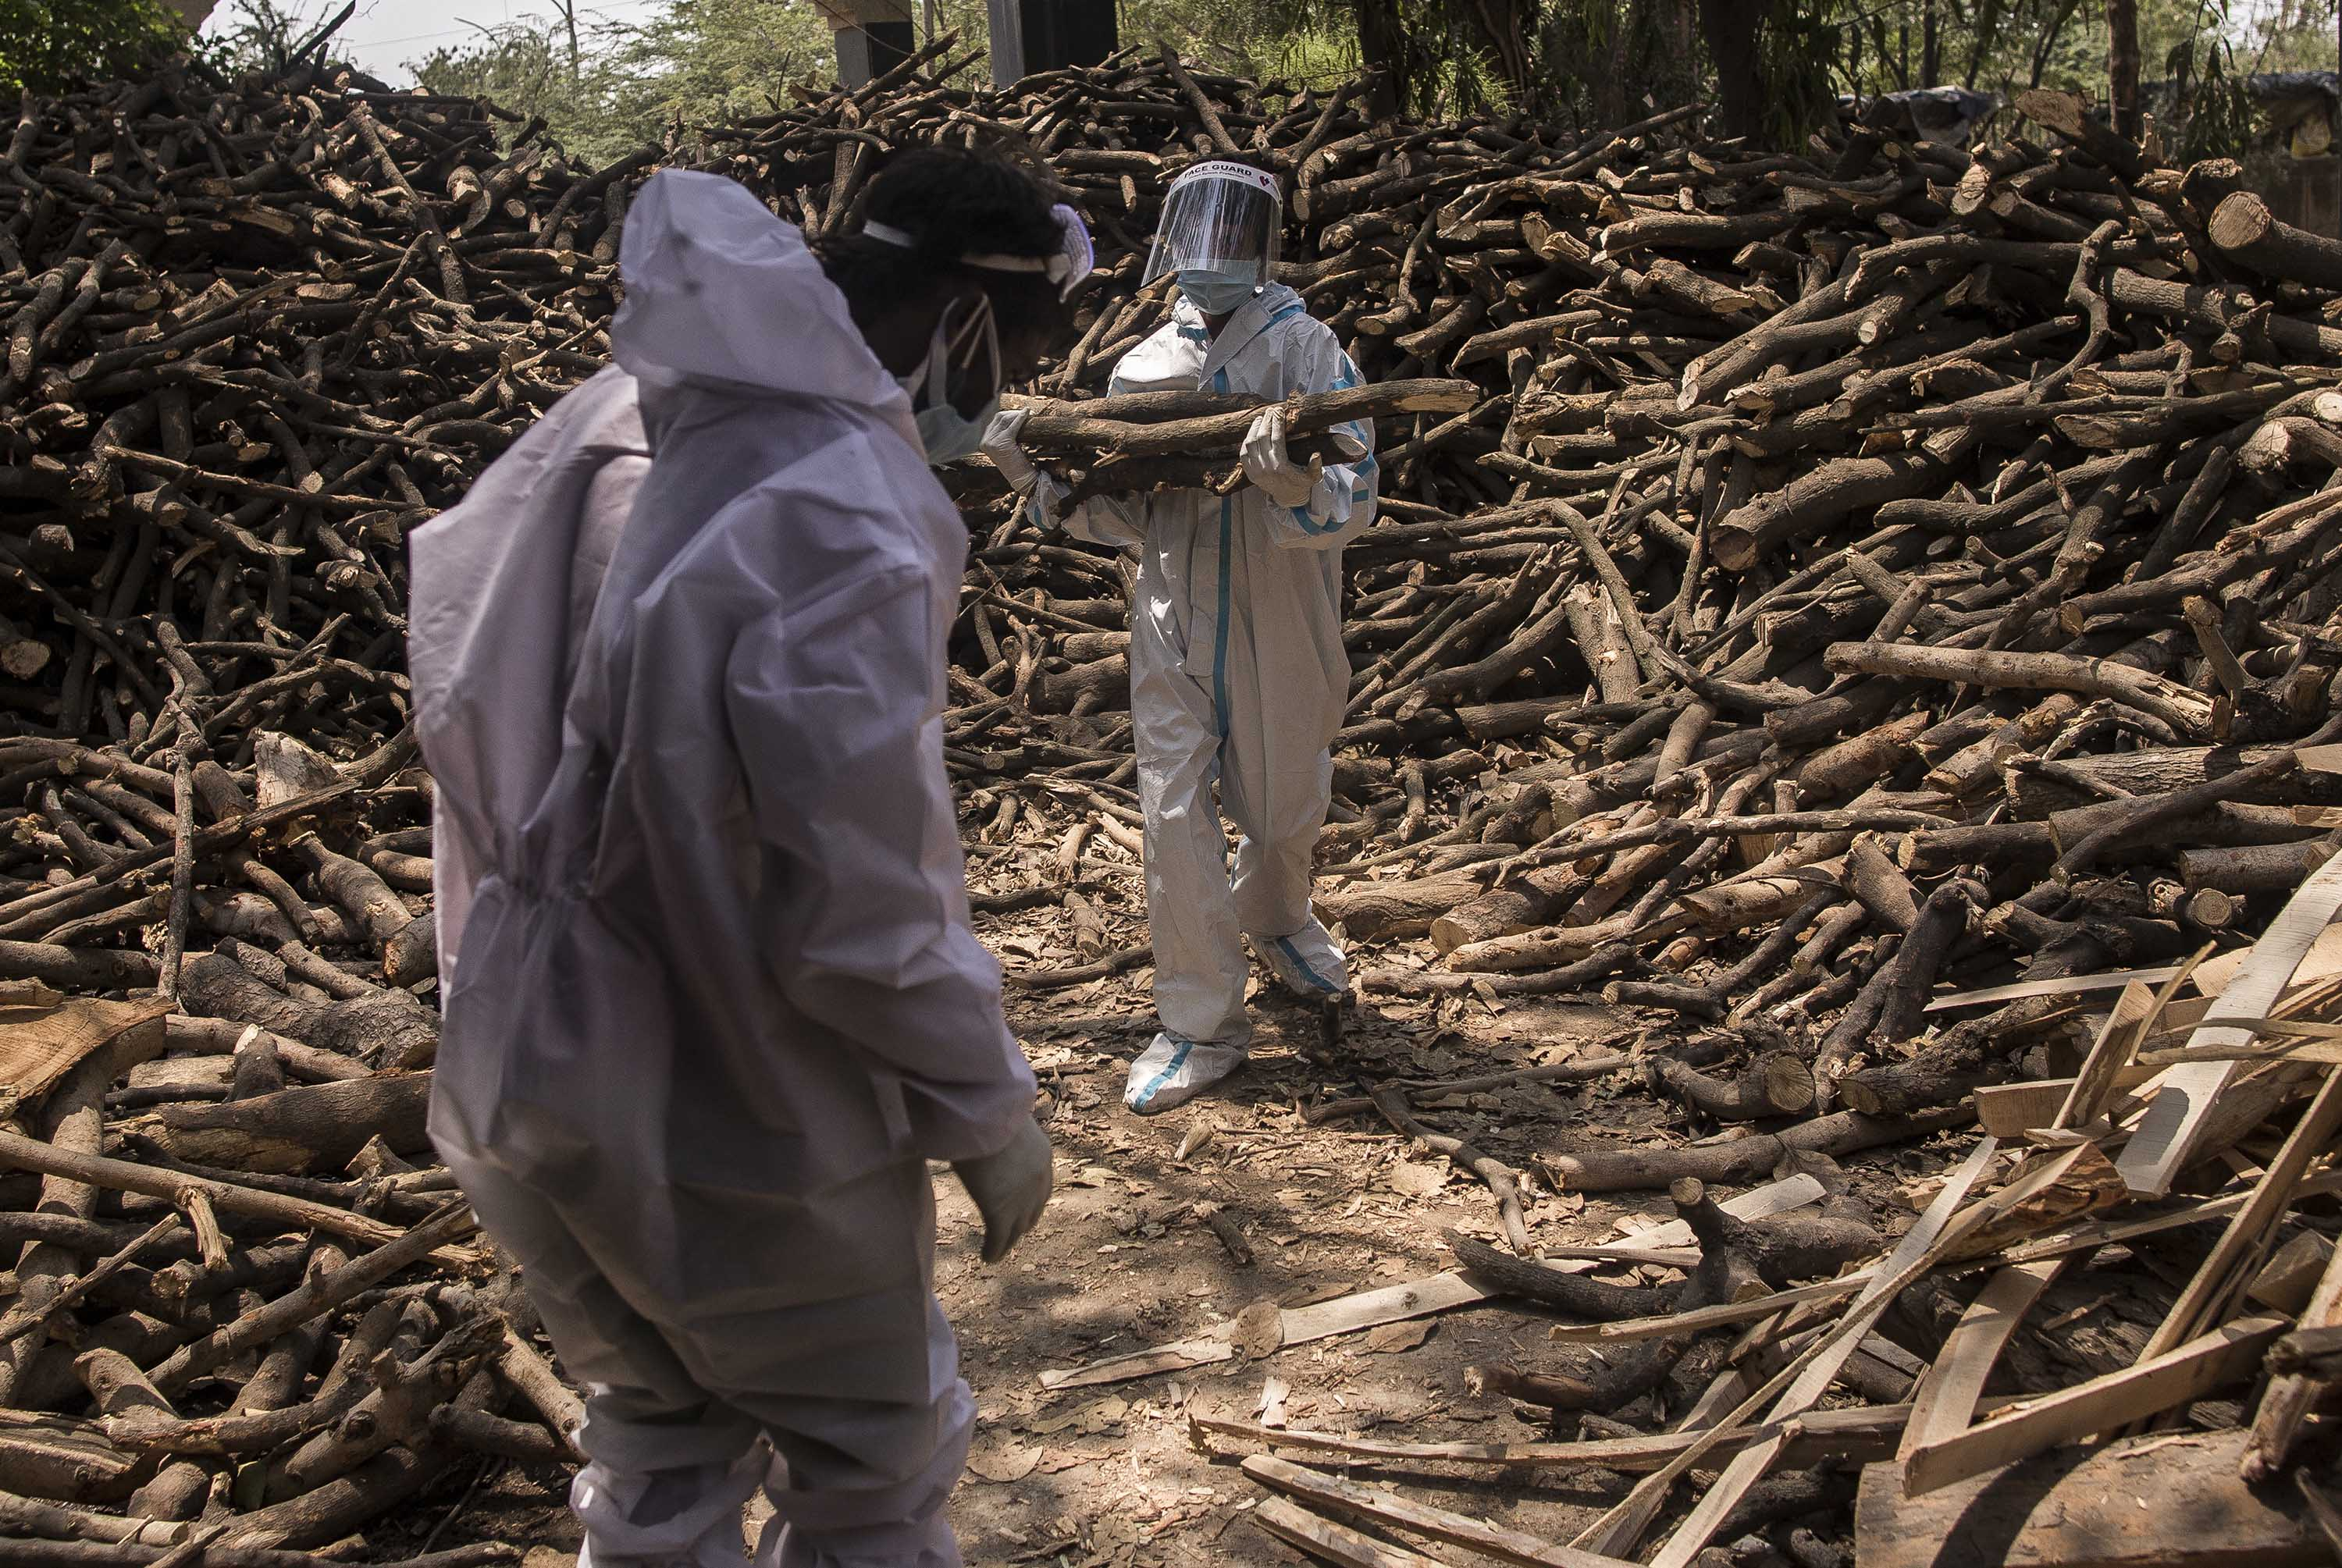 Workers sort logs of wood to be used on funeral pyres for people who died of Covid-19, at a crematorium on the outskirts of New Delhi, India, on April 22.